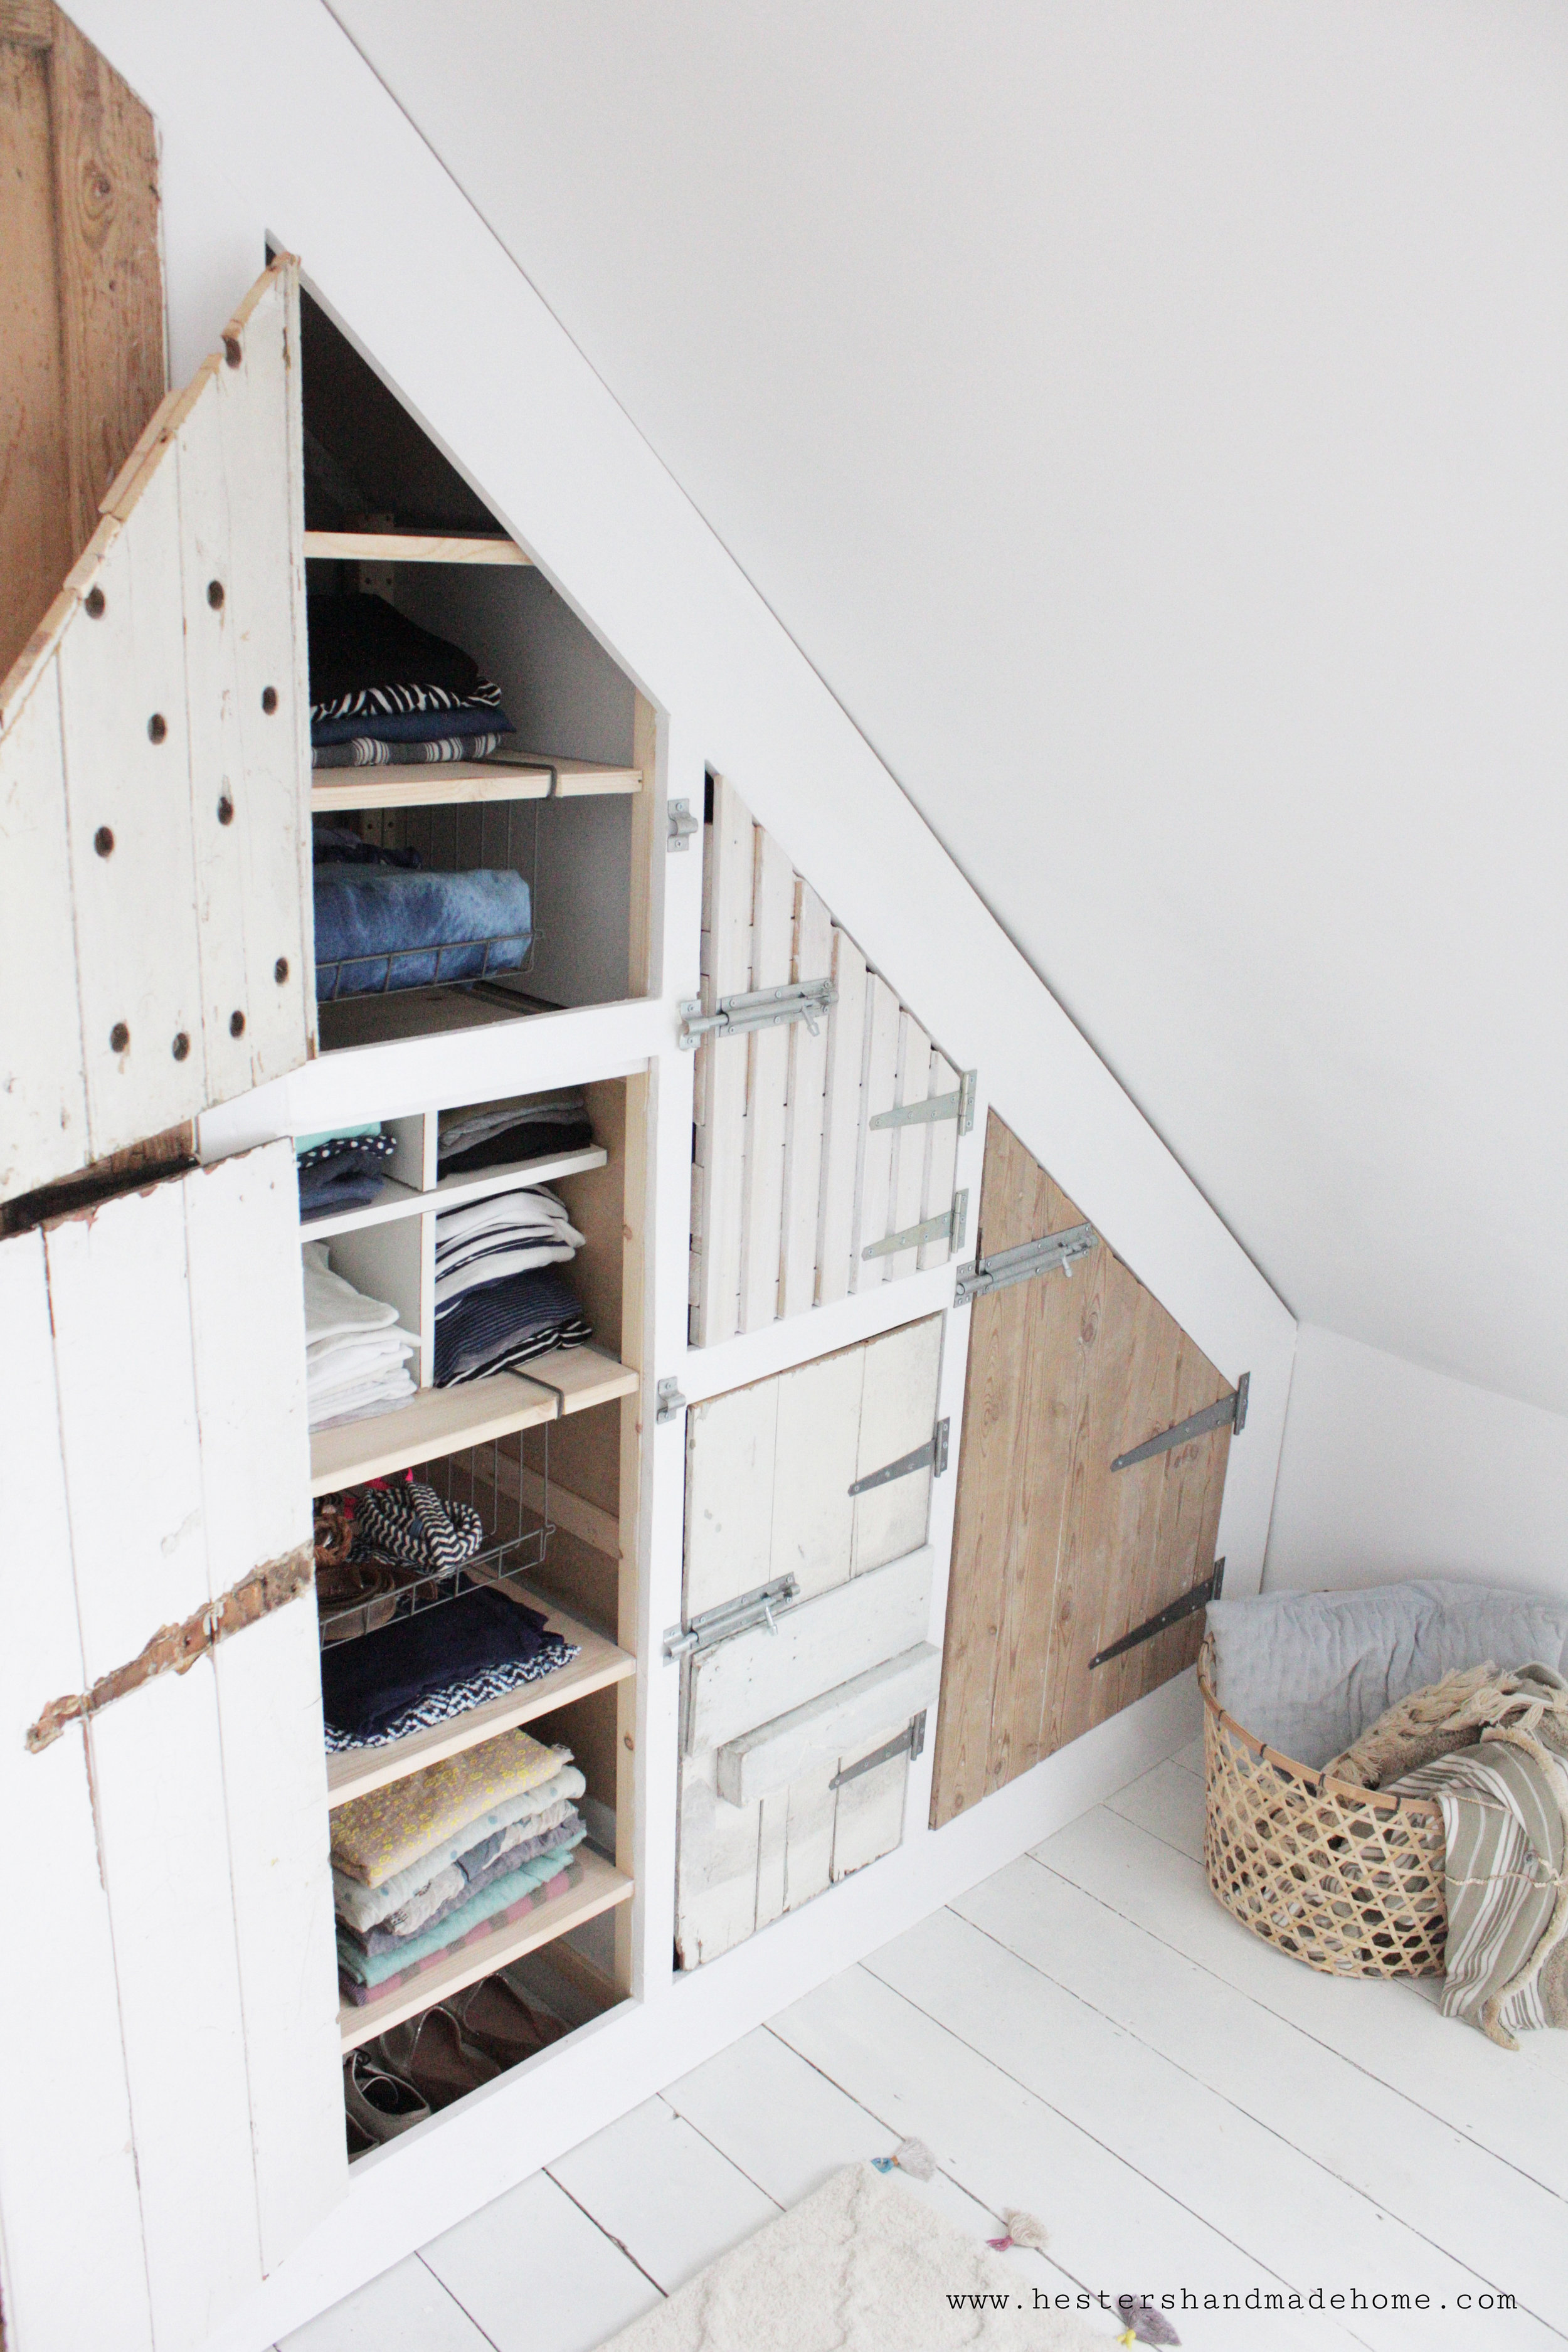 build in wardrobe with recaimed doors by www.hestershandmadehome.com